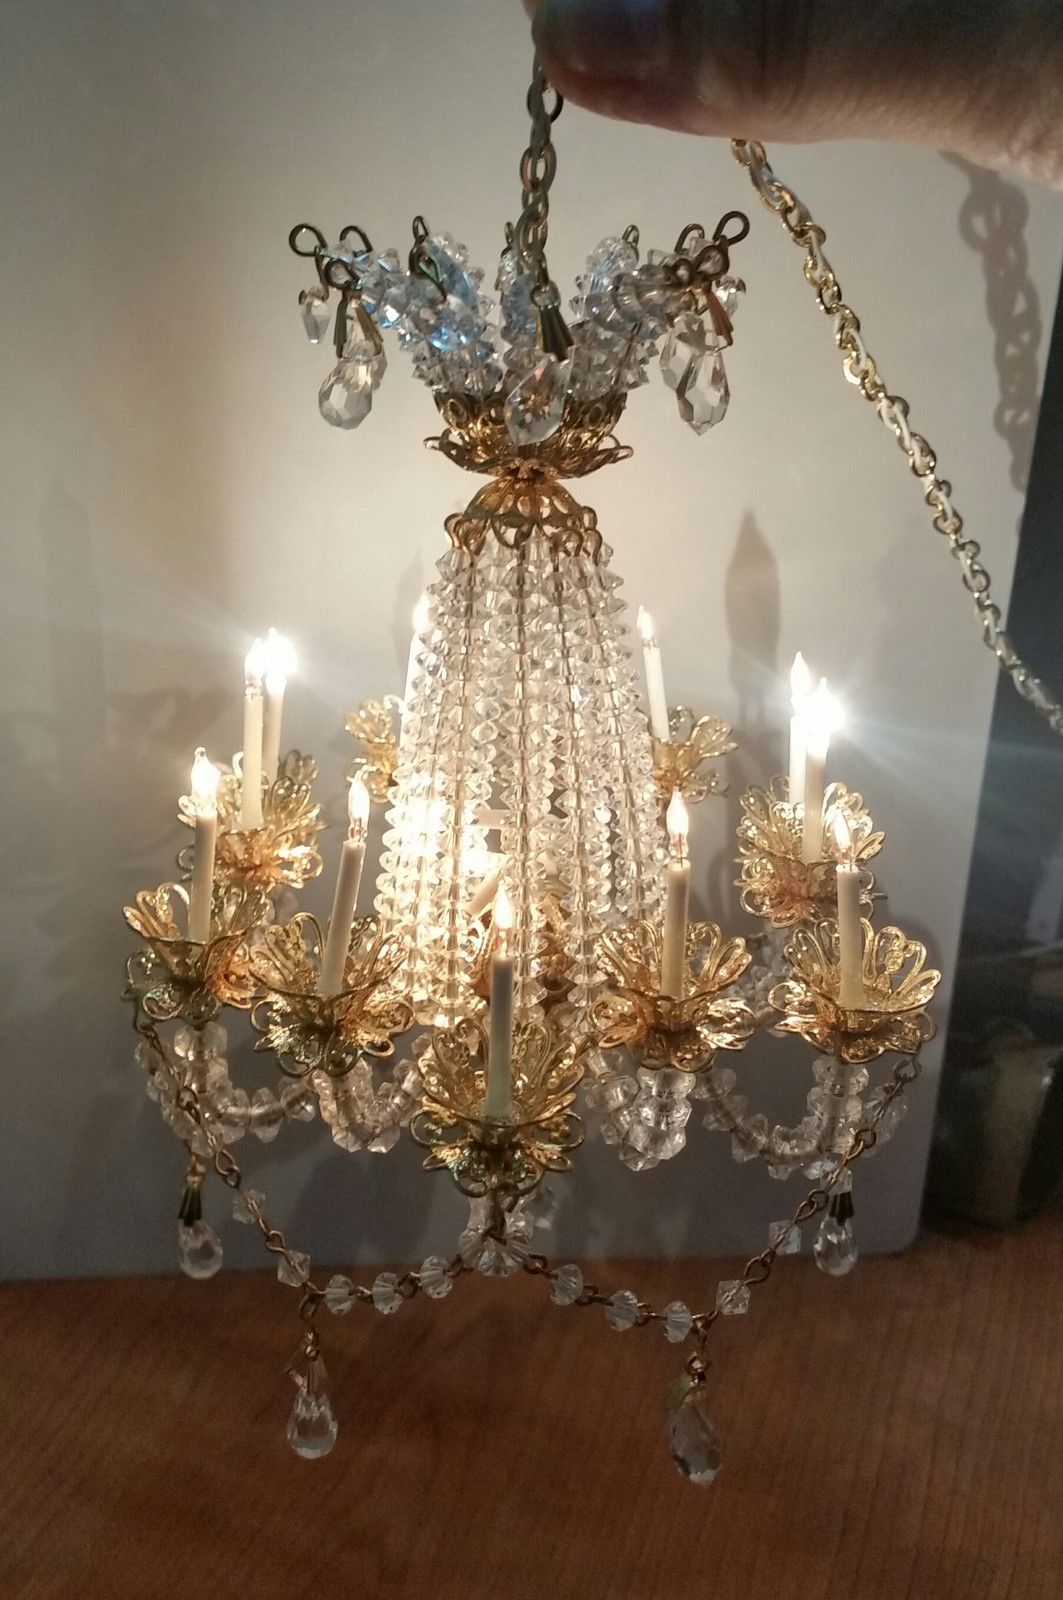 Handmade Crystal Chandelier Swarowski 12 Arm Rosel Miniature Dollhouse 1:12   30%